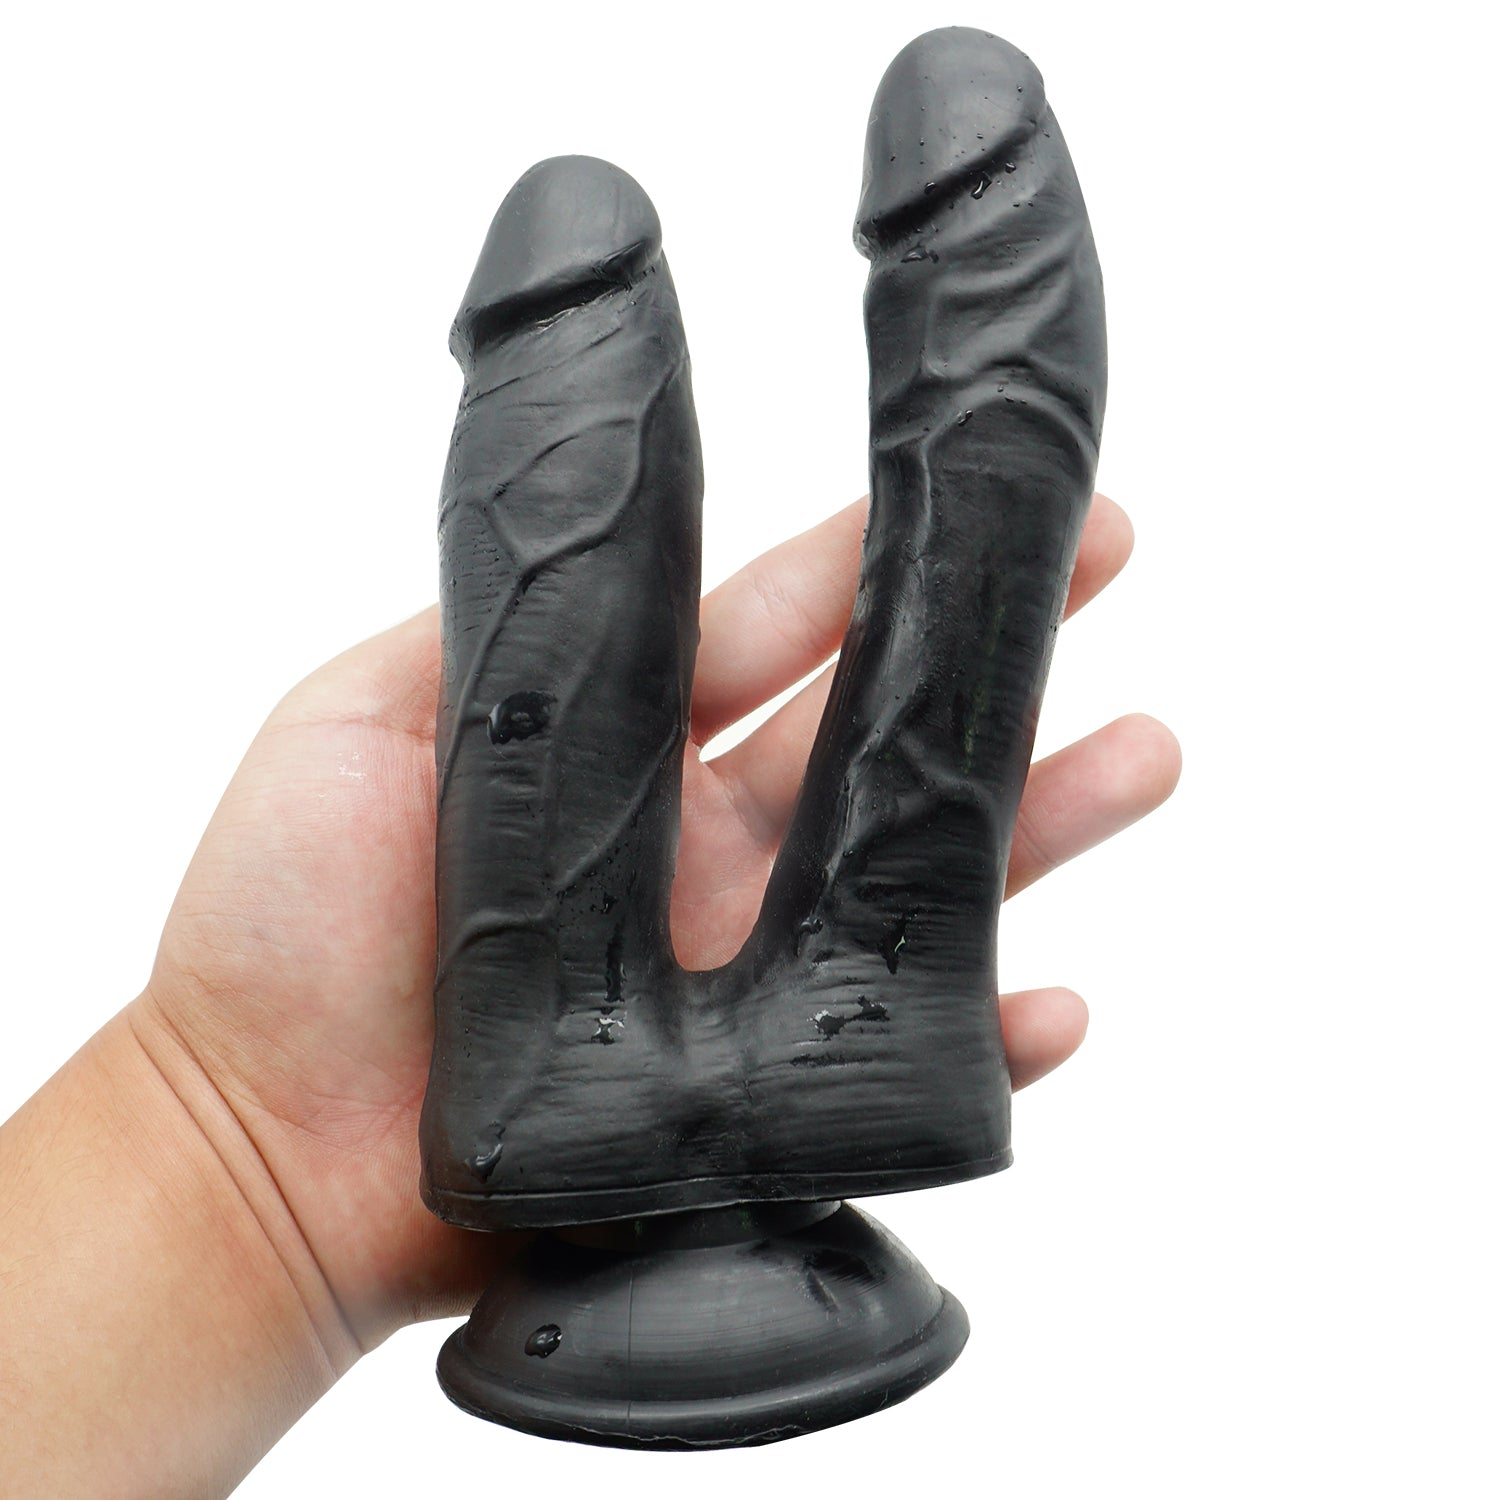 MD Fighter Realistic Double Ended Dildo - Black